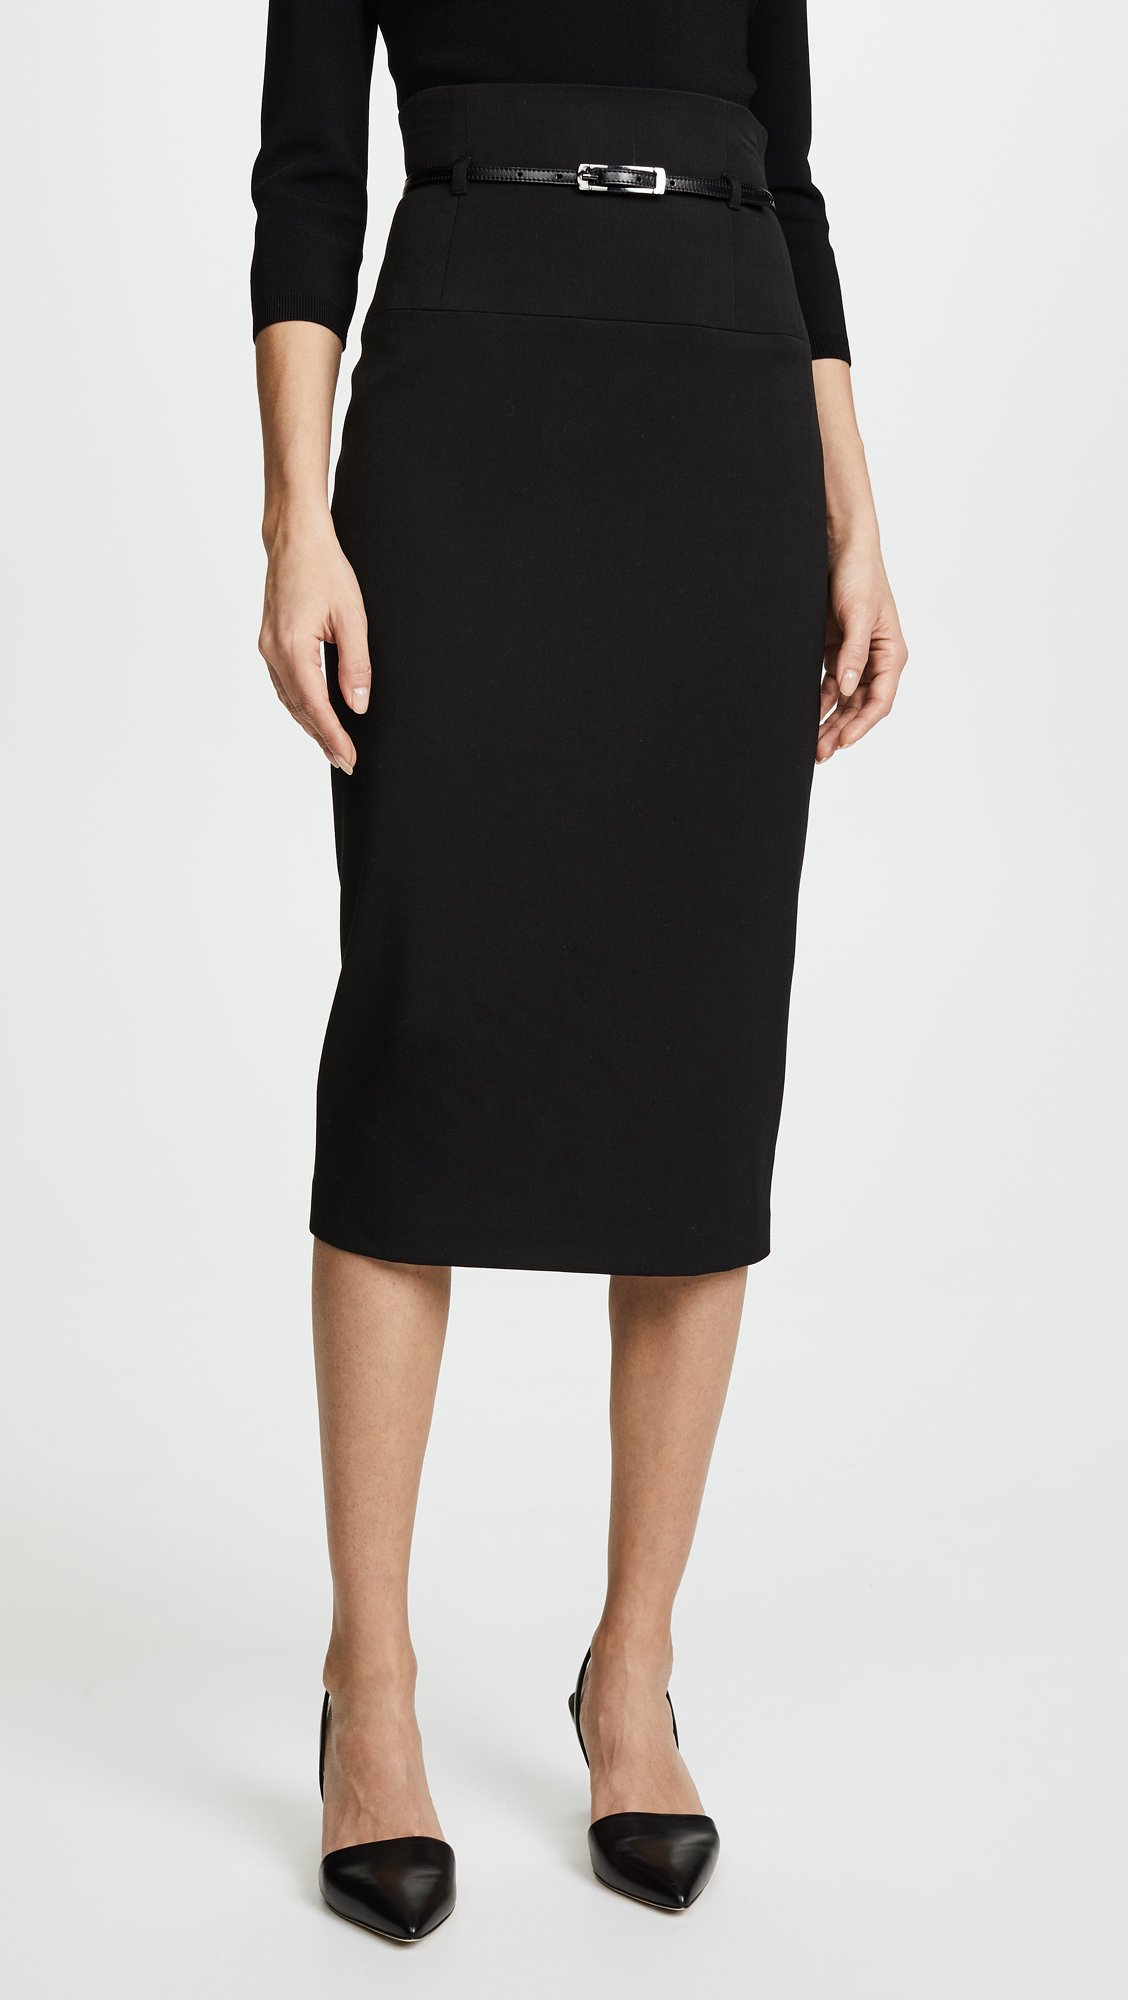 Black Halo Women's High Waisted Pencil Skirt, Black, 10 by Black Halo (Image #2)